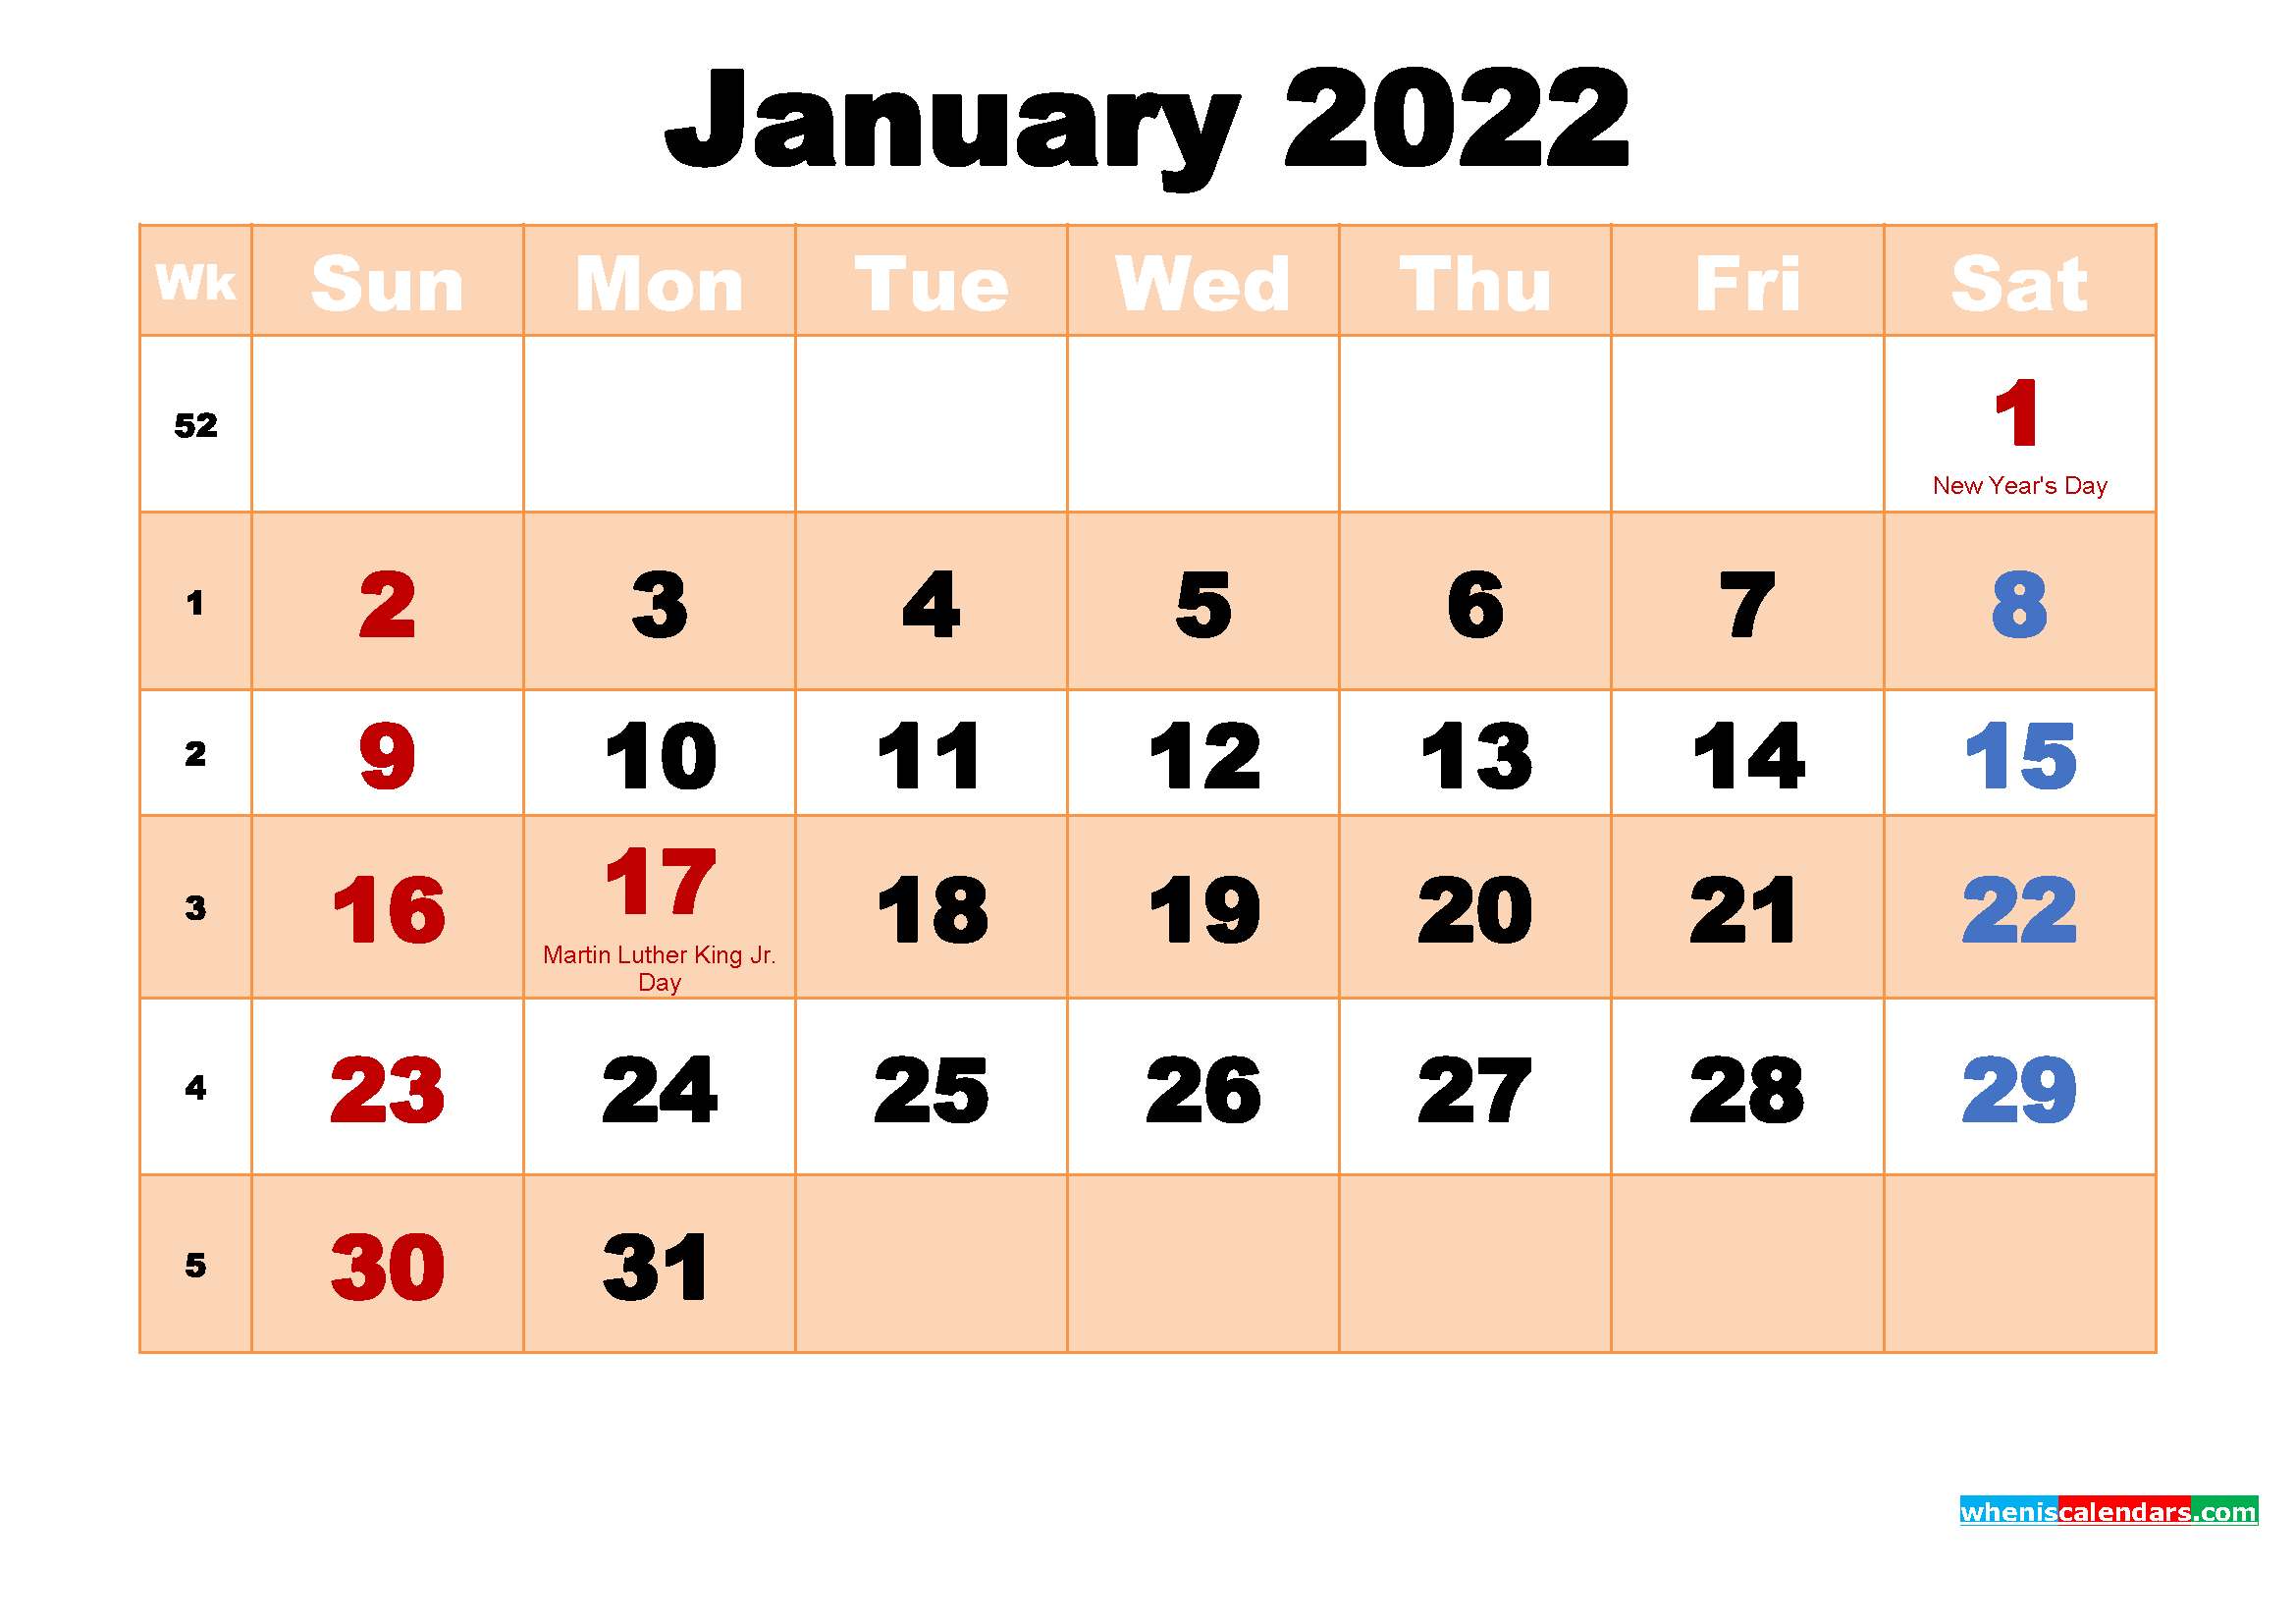 Free Printable January 2022 Calendar With Holidays regarding January 2022 Free Month At A Glance Planner.pdf Photo